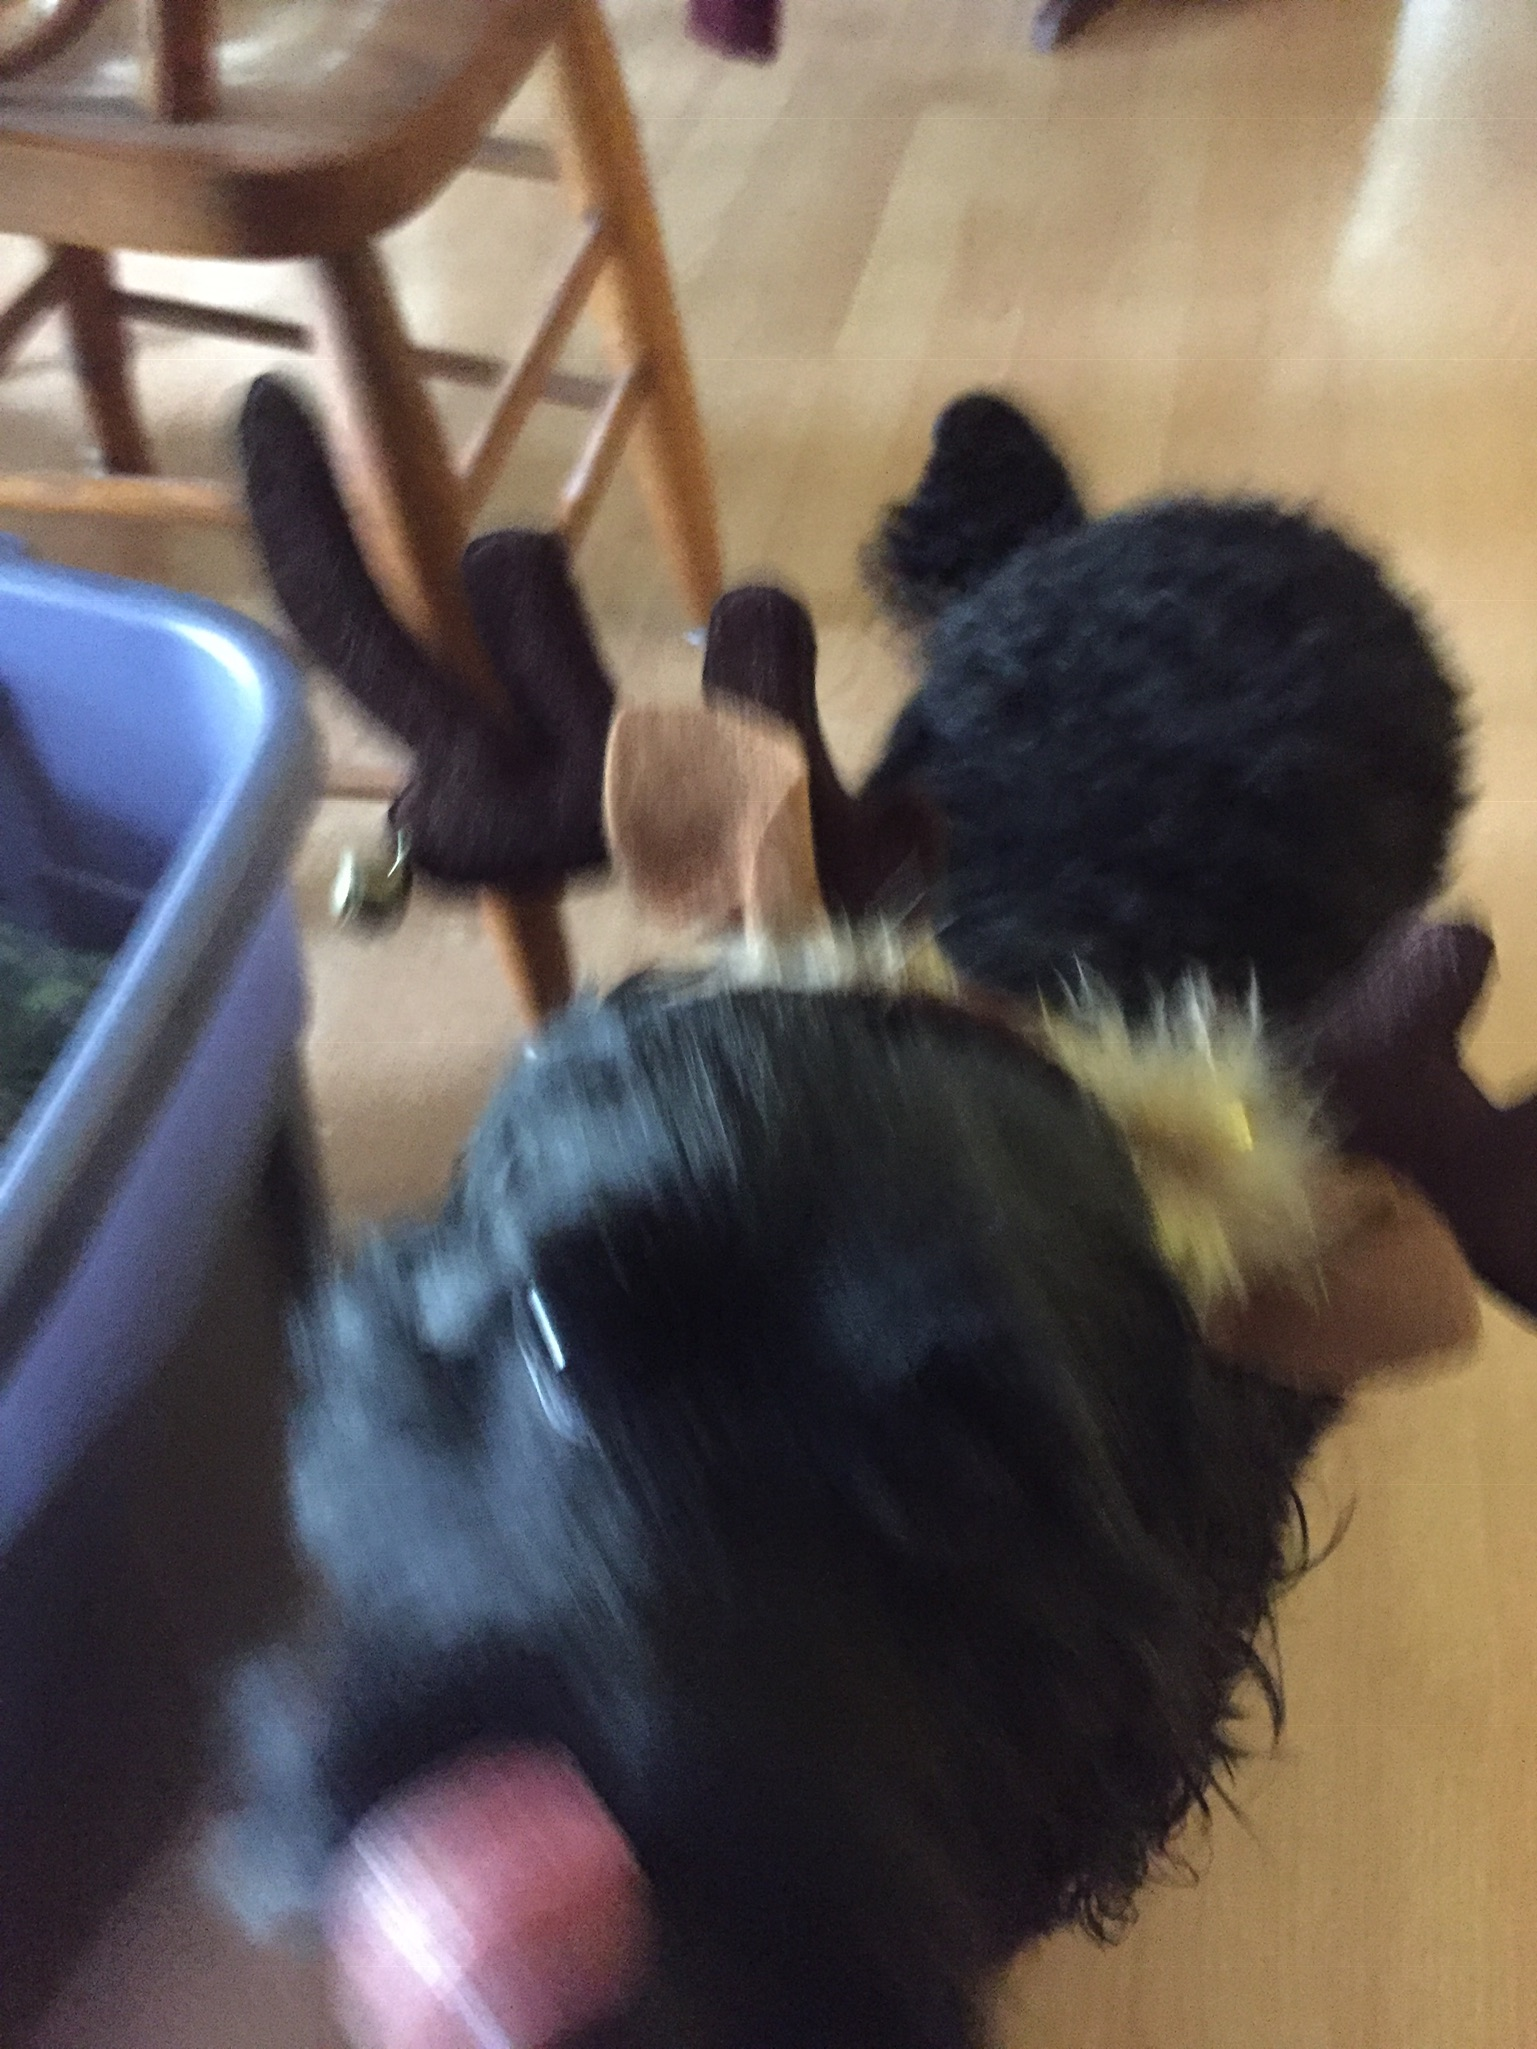 blurry photo of black dog with reindeer antlers on her head, licking her own nose